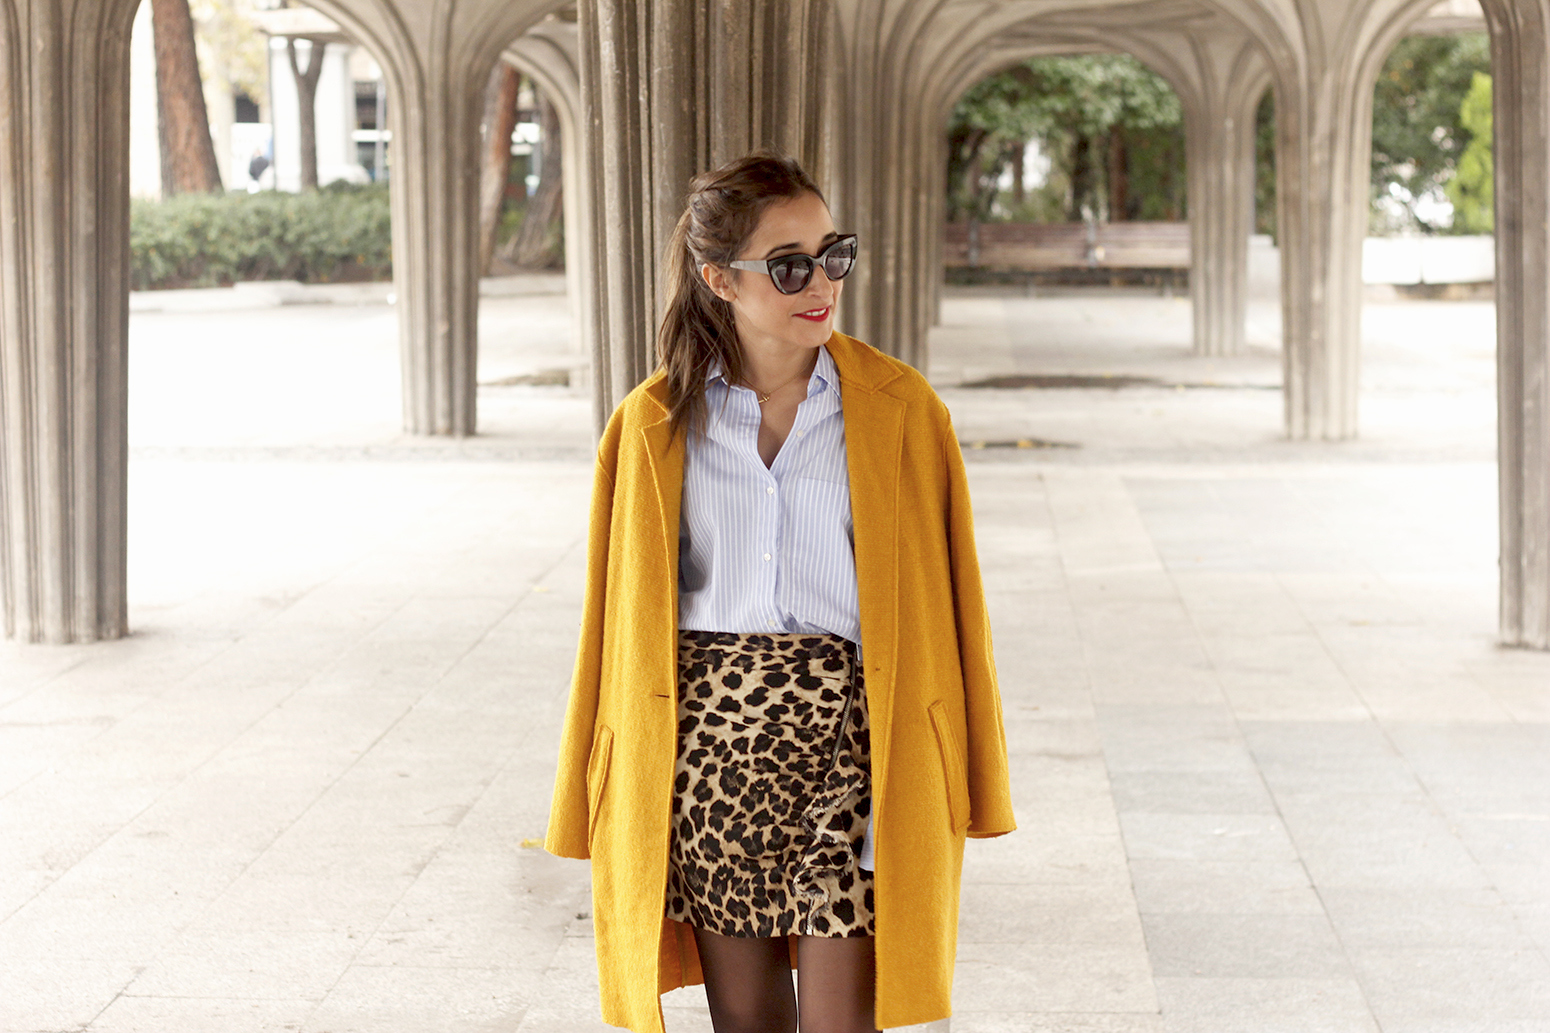 Leopard Skirt striped shirt black heels mustard coat fall outfit style fashion10